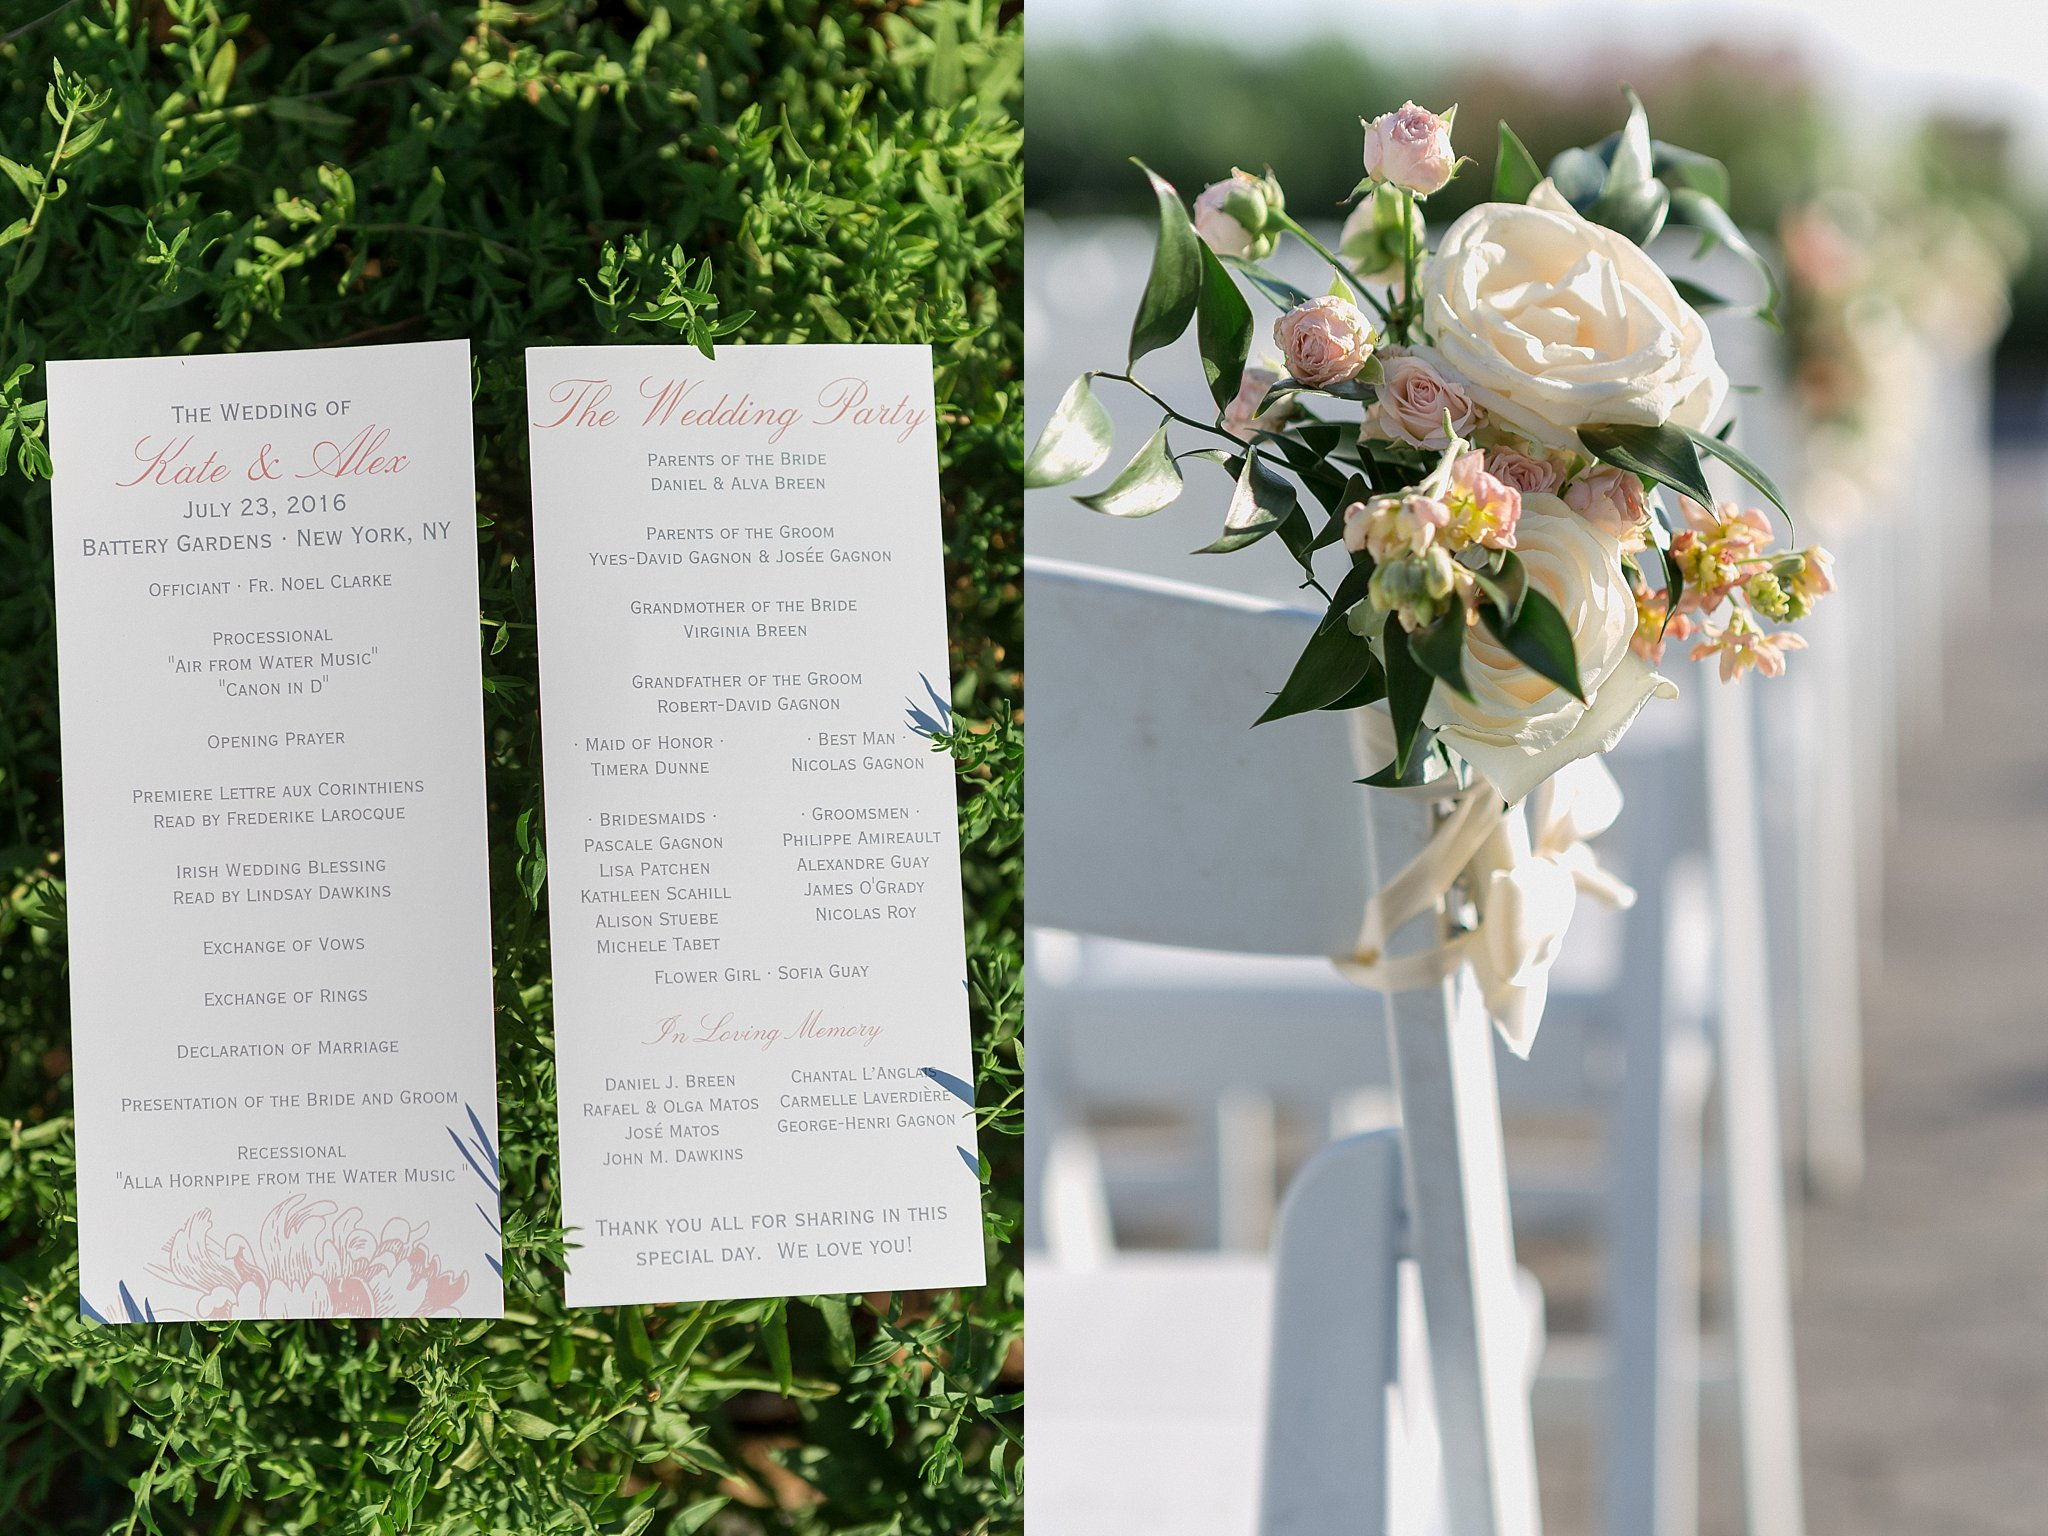 Wedding Stationery and Styling photographed by Susan Shek Wedding Photography in New York City, NY.